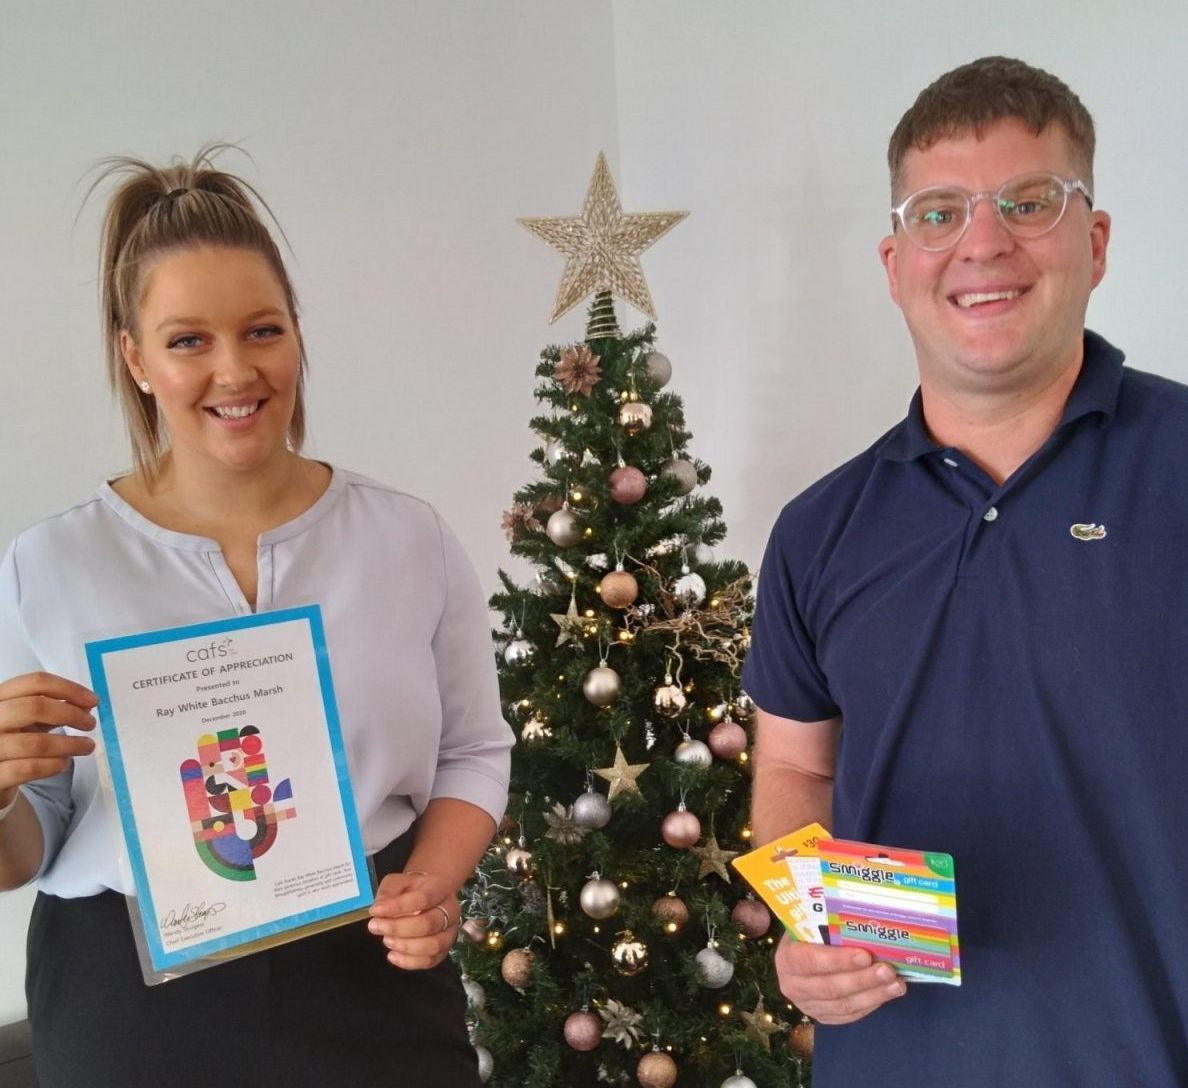 Cafs Christmas Appeal